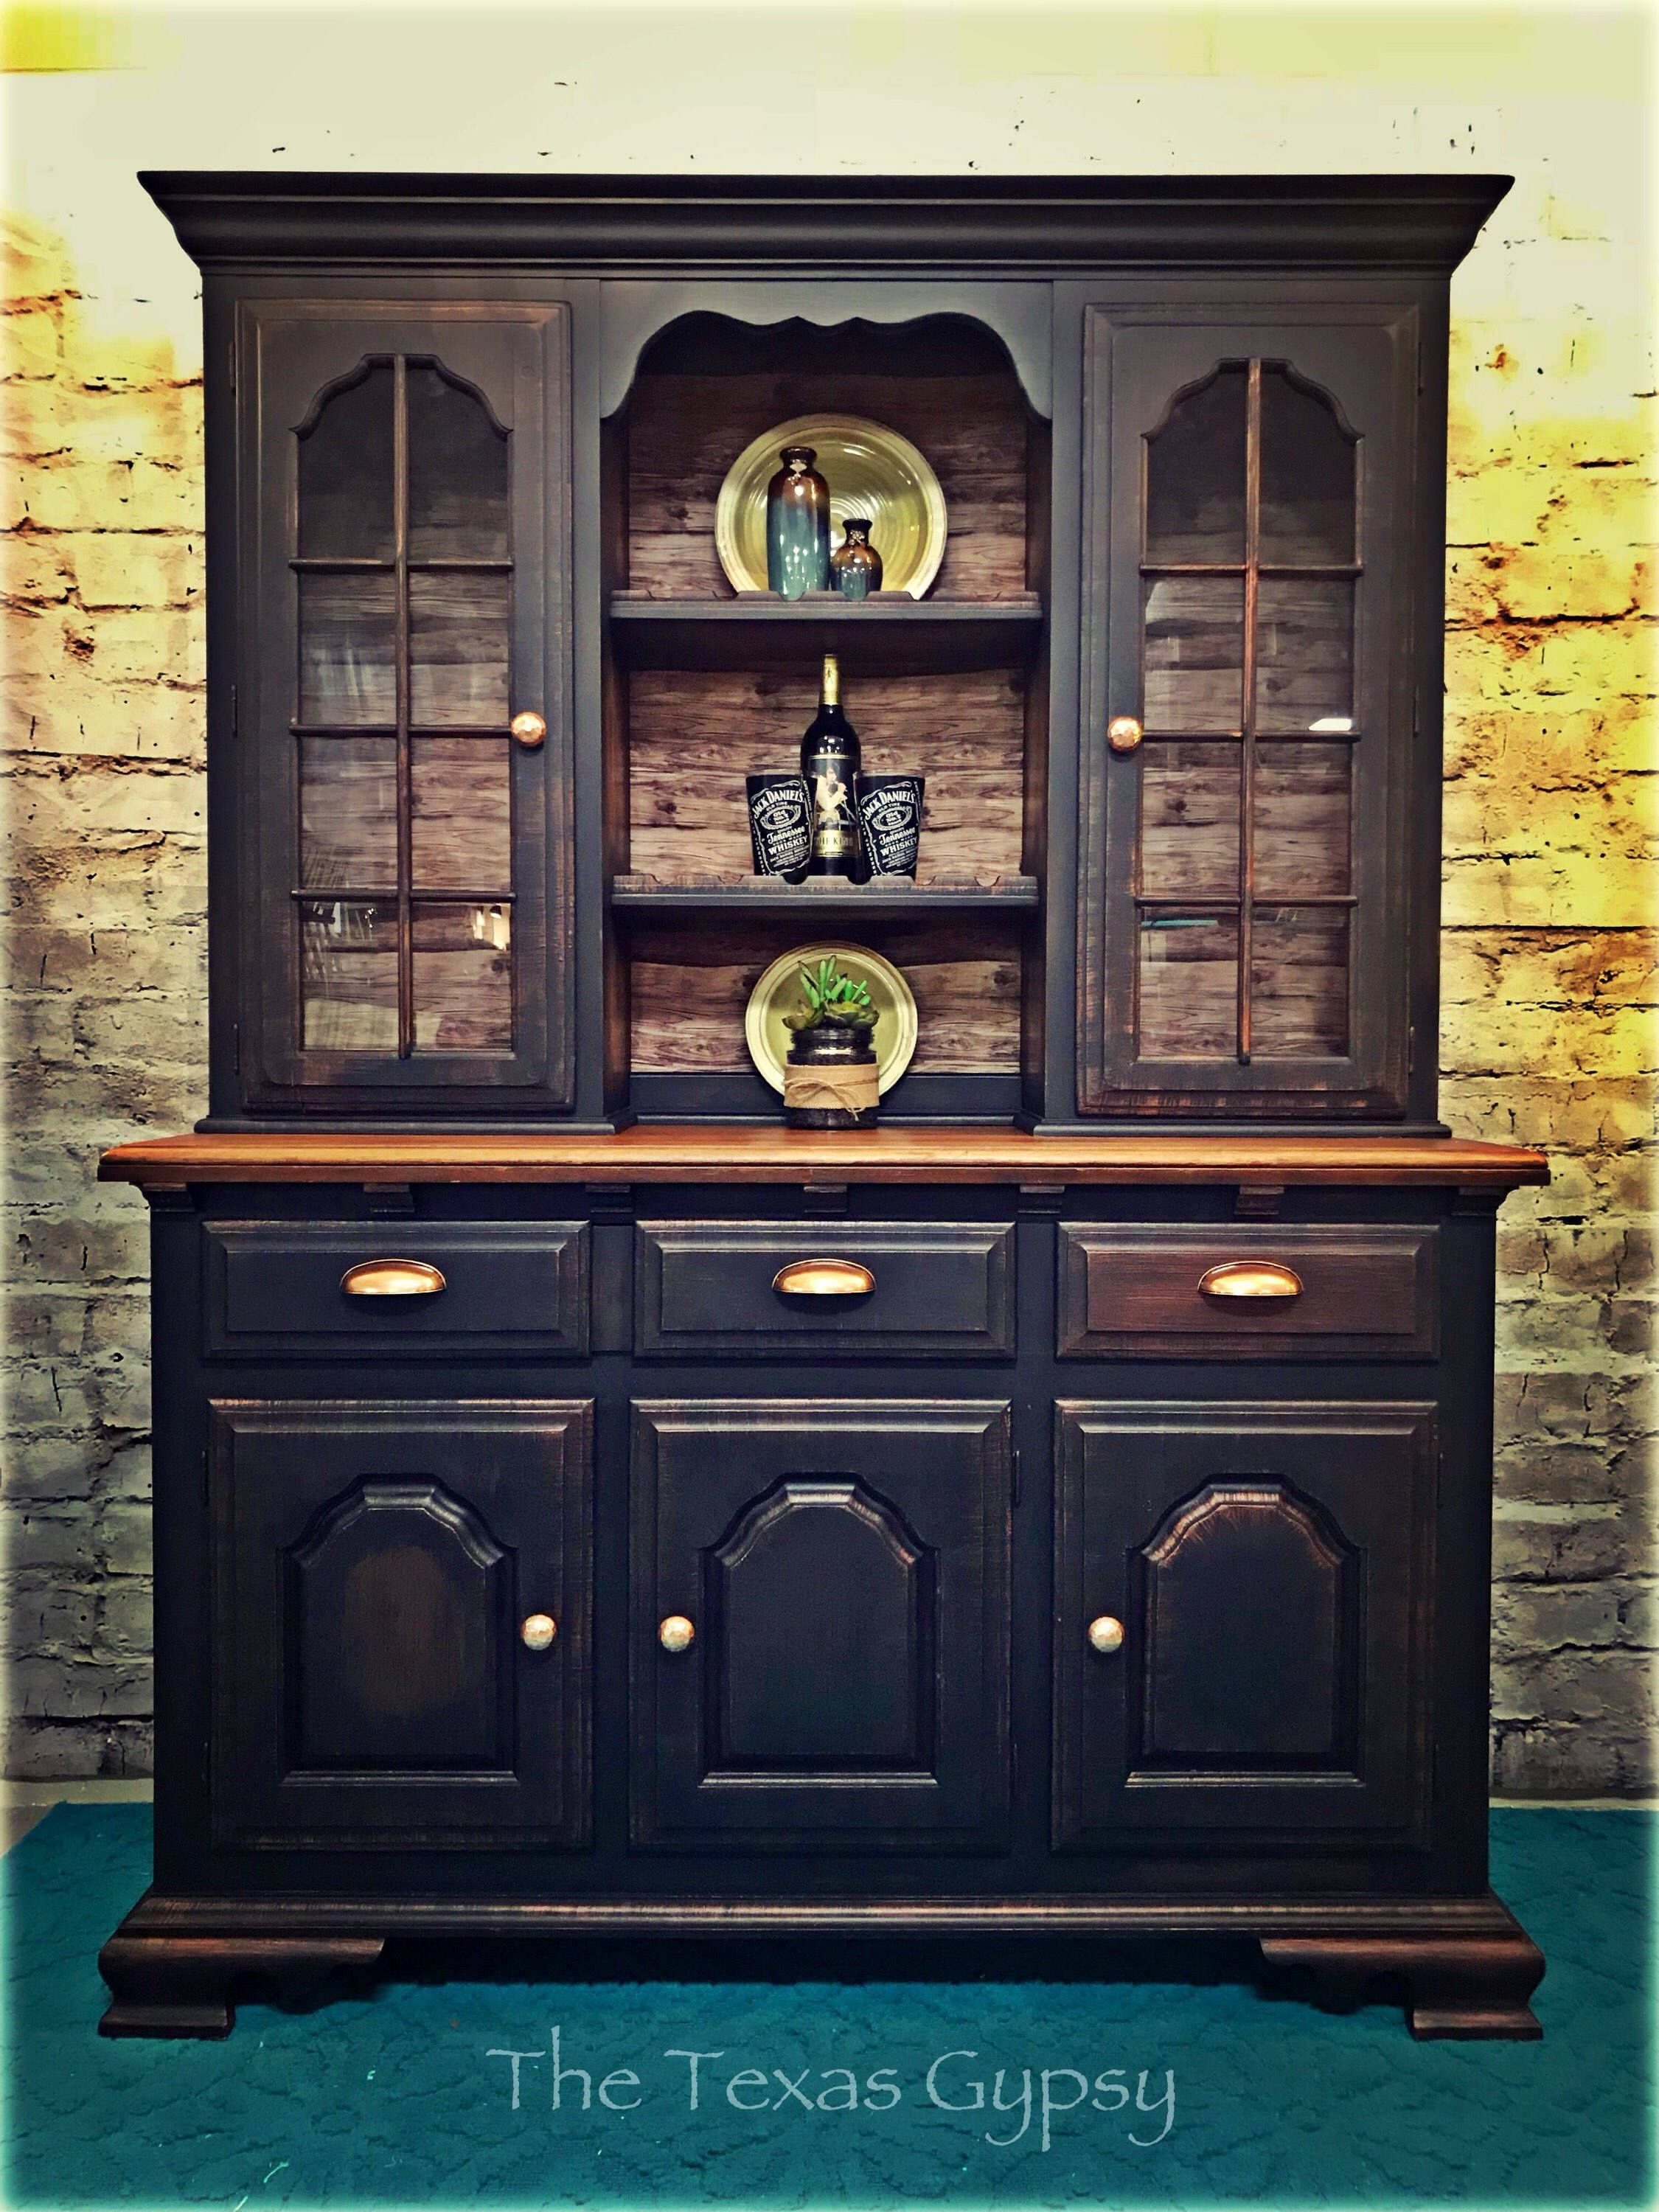 Excited to share this item from my etsy shop farmhouse hutch china cabinet solid wood bar black and copper furniture farmhouse gypsy boho